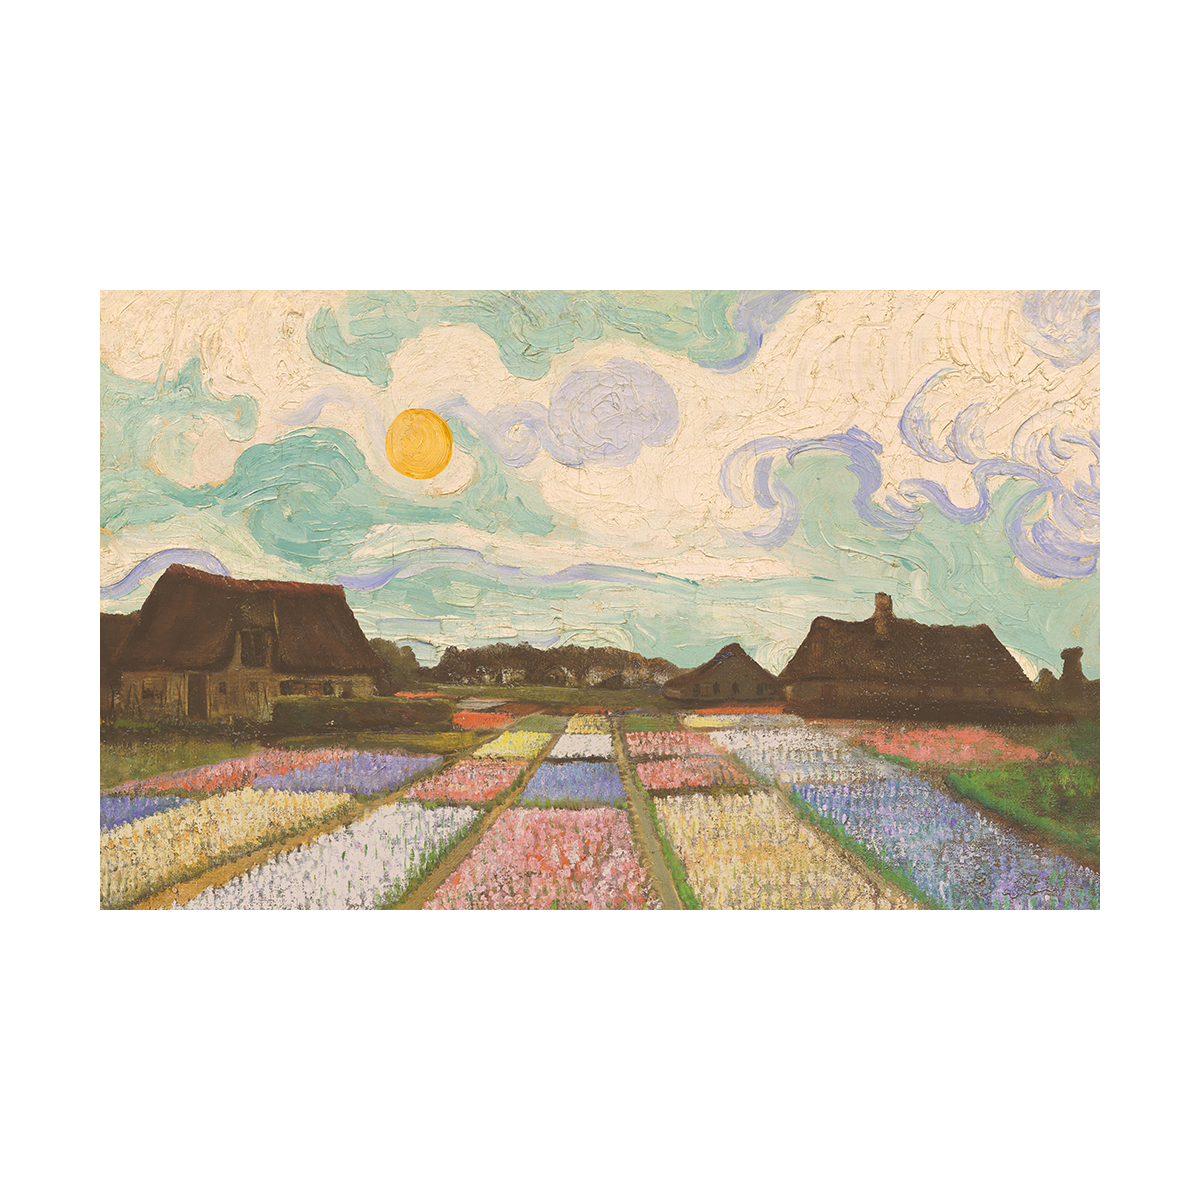 A painting of a beds of flowers in front of houses under a rising, early-morning, orange sun with a partly cloudy sky